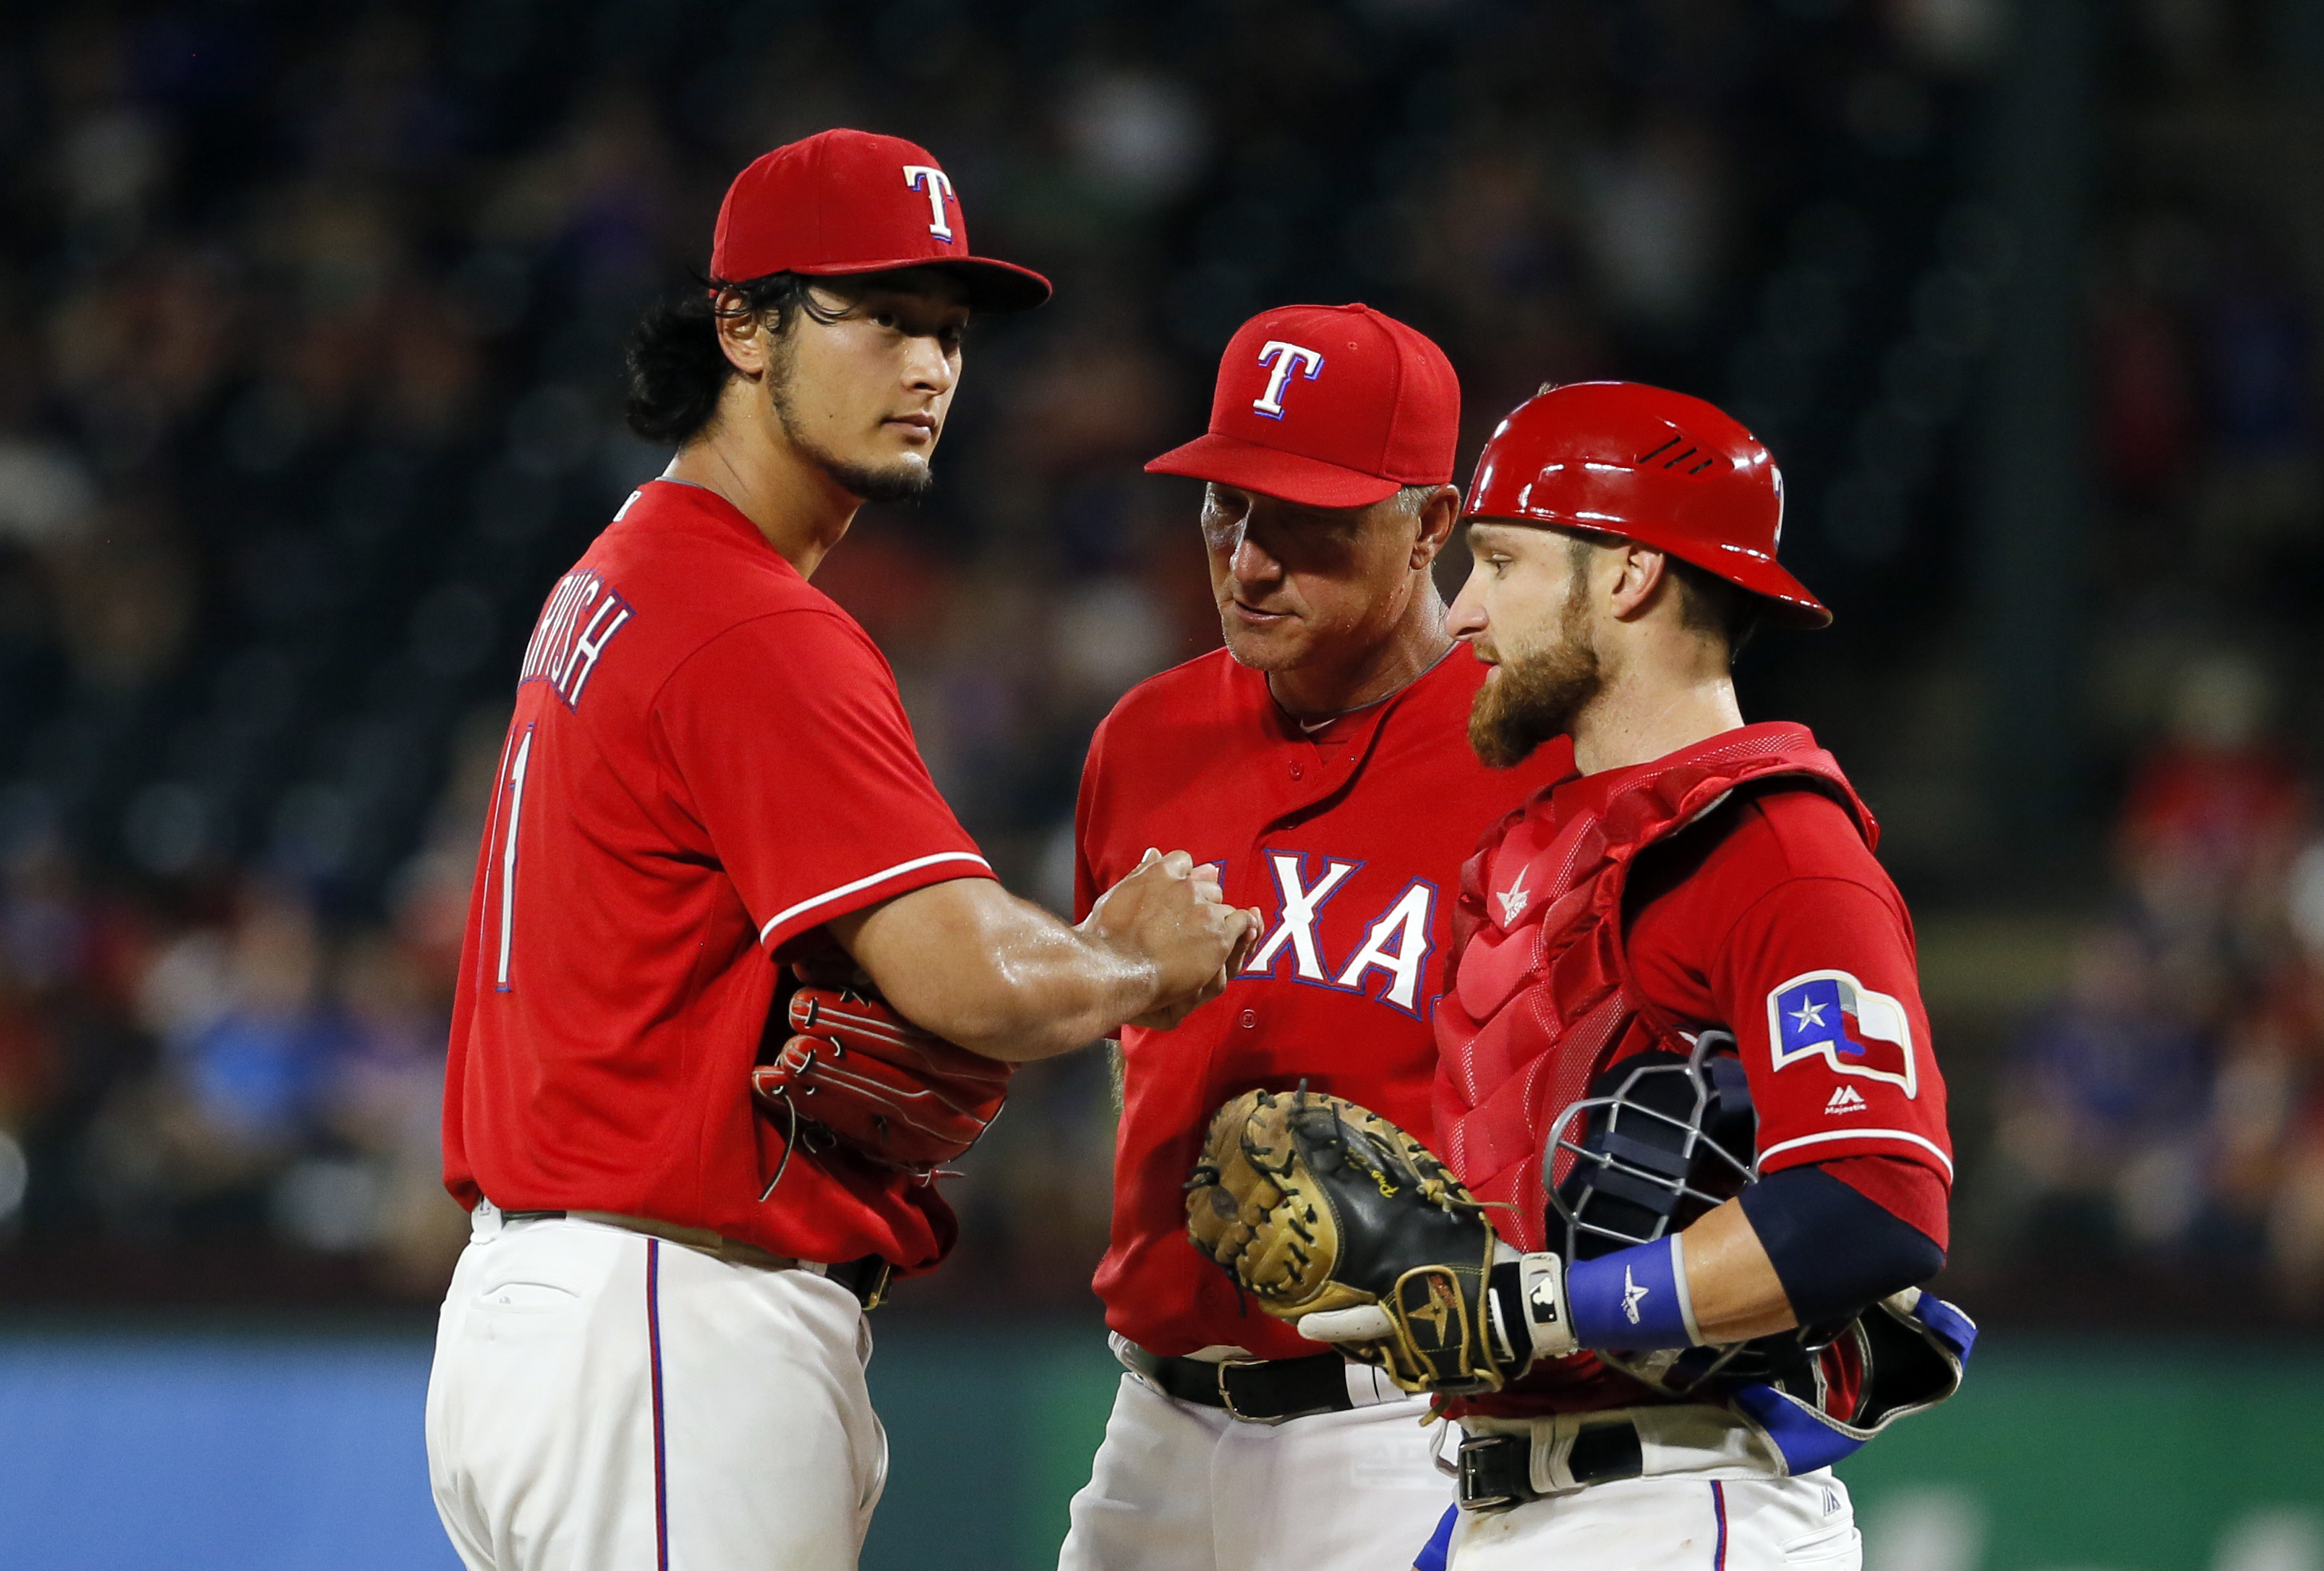 Texas Rangers' Yu Darvish, left, of Japan gets a visit from manager Jeff Banister, center, and teammate Jonathan Lucroy during the seventh inning of a baseball game against the Detroit Tigers early Saturday, Aug. 13, 2016, in Arlington, Texas. (AP Photo/T